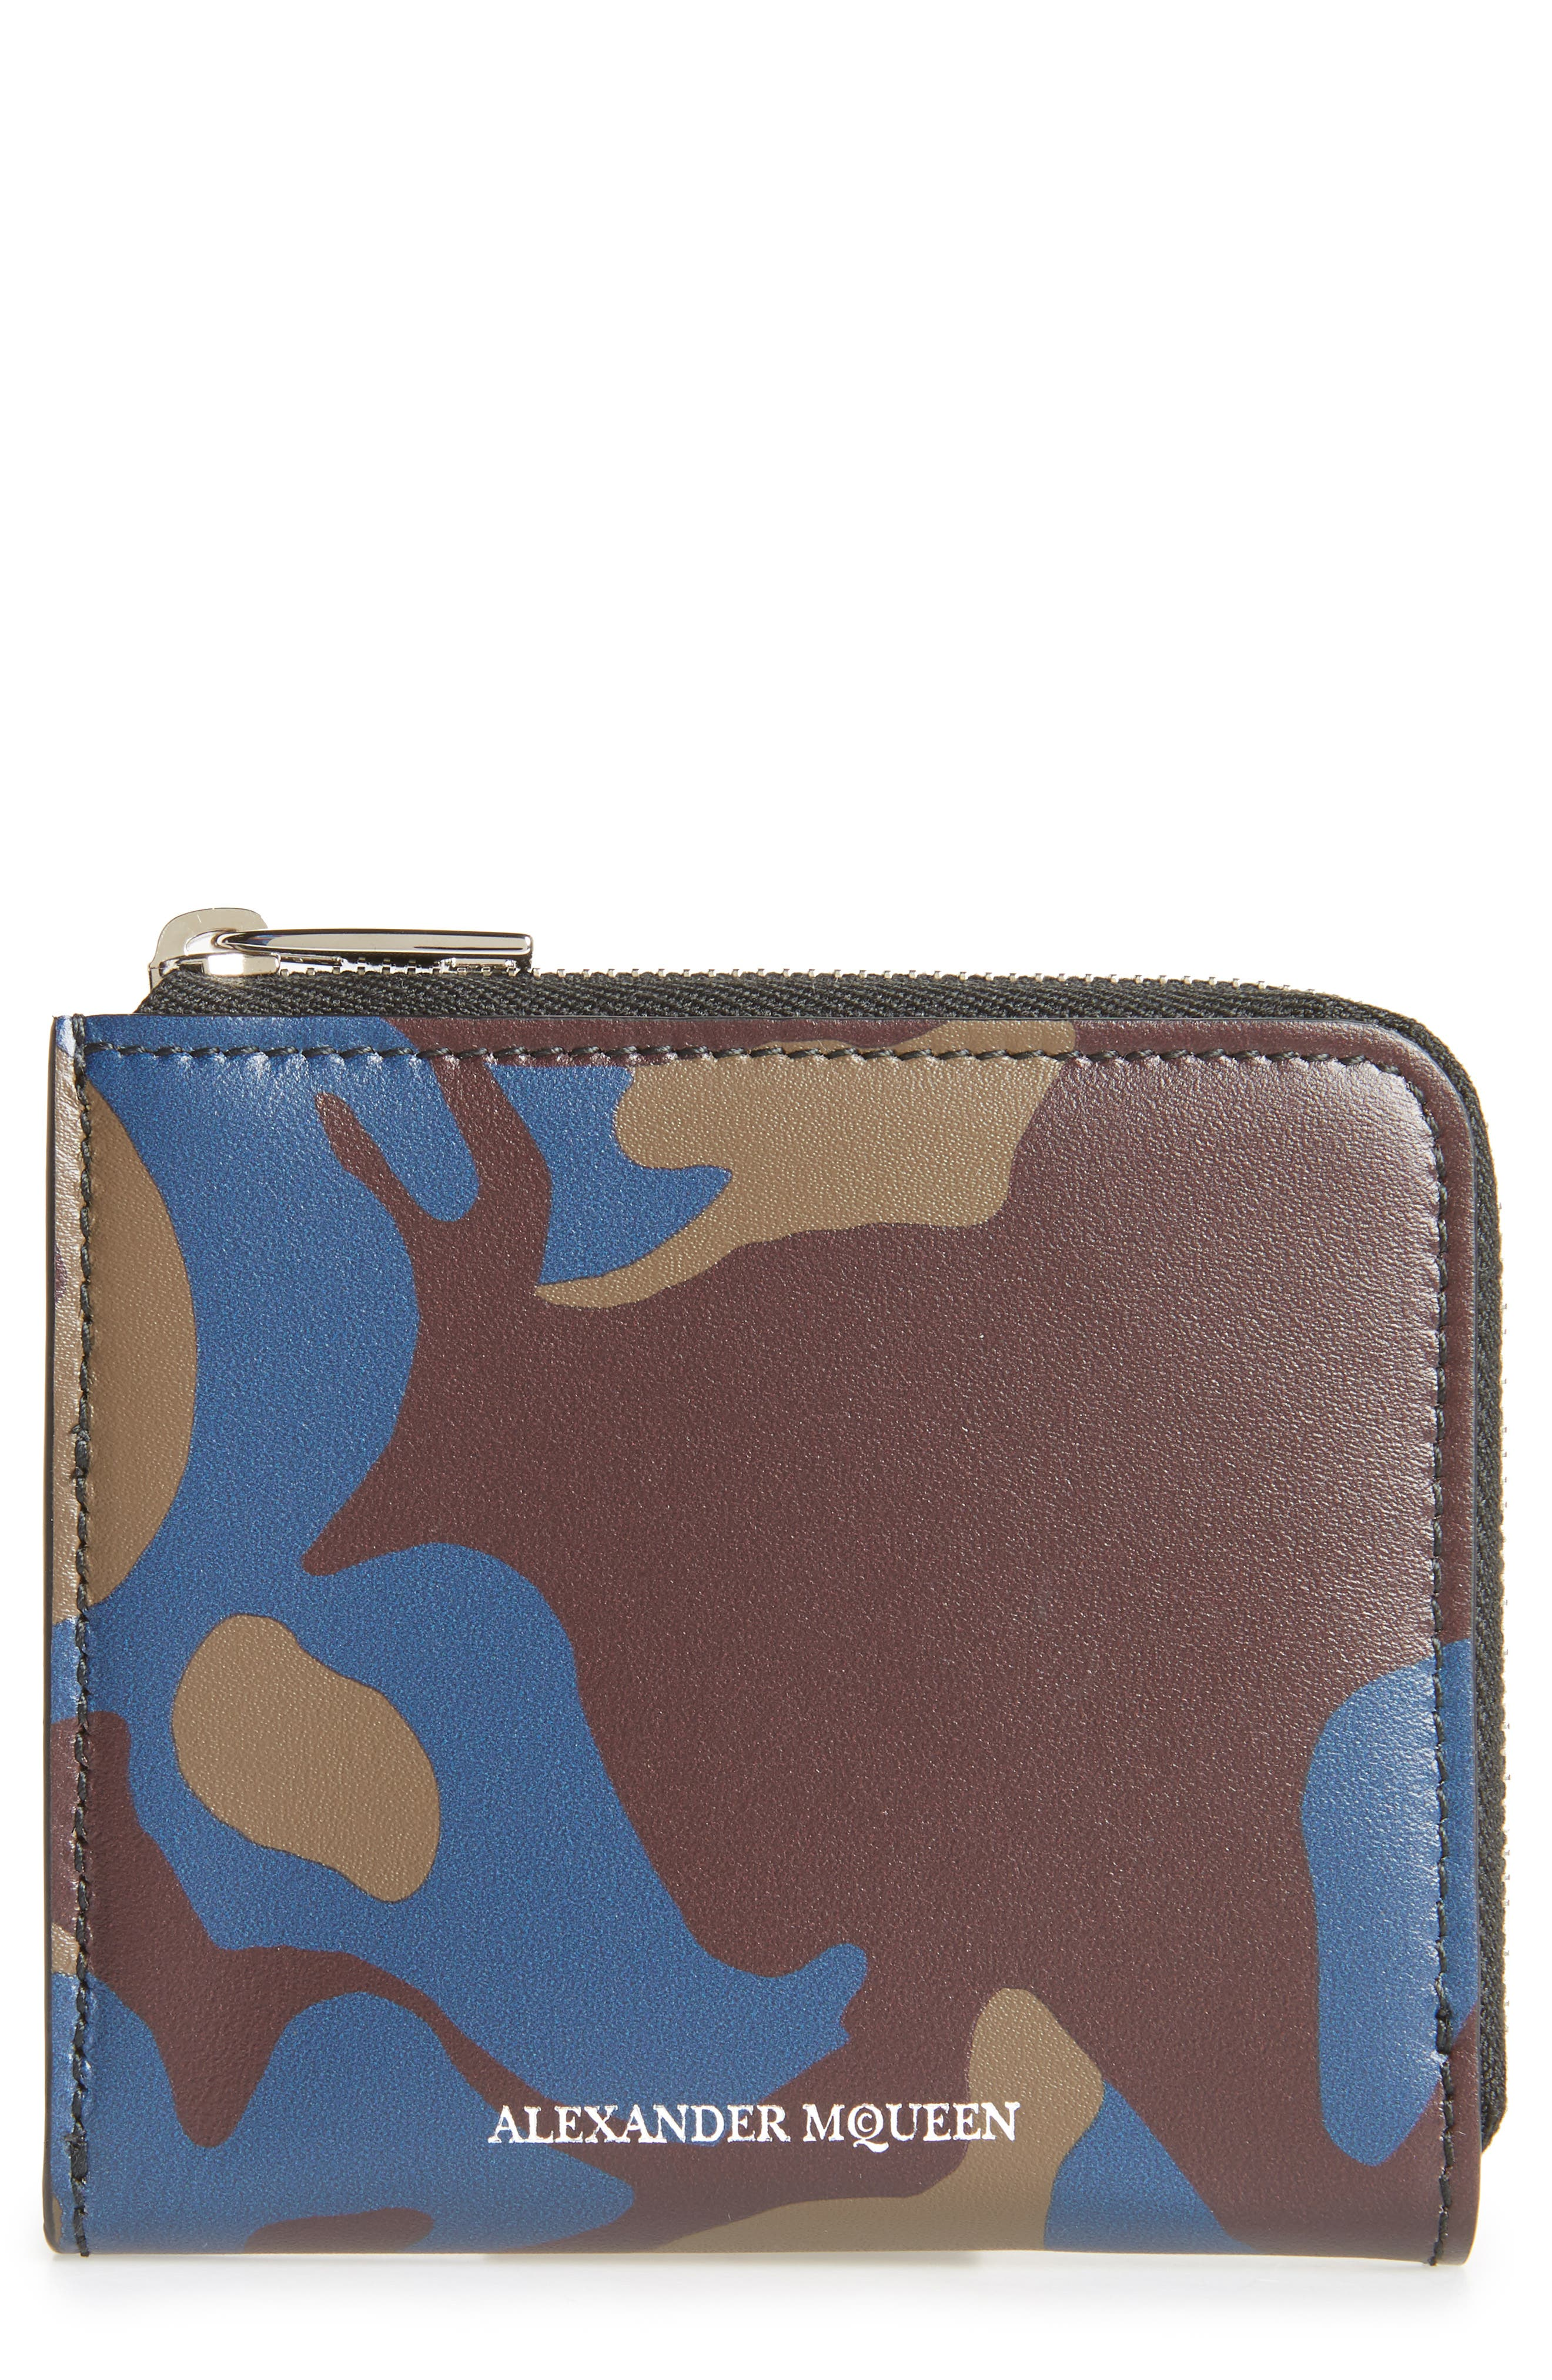 Leather Zip Coin Purse,                             Main thumbnail 1, color,                             941